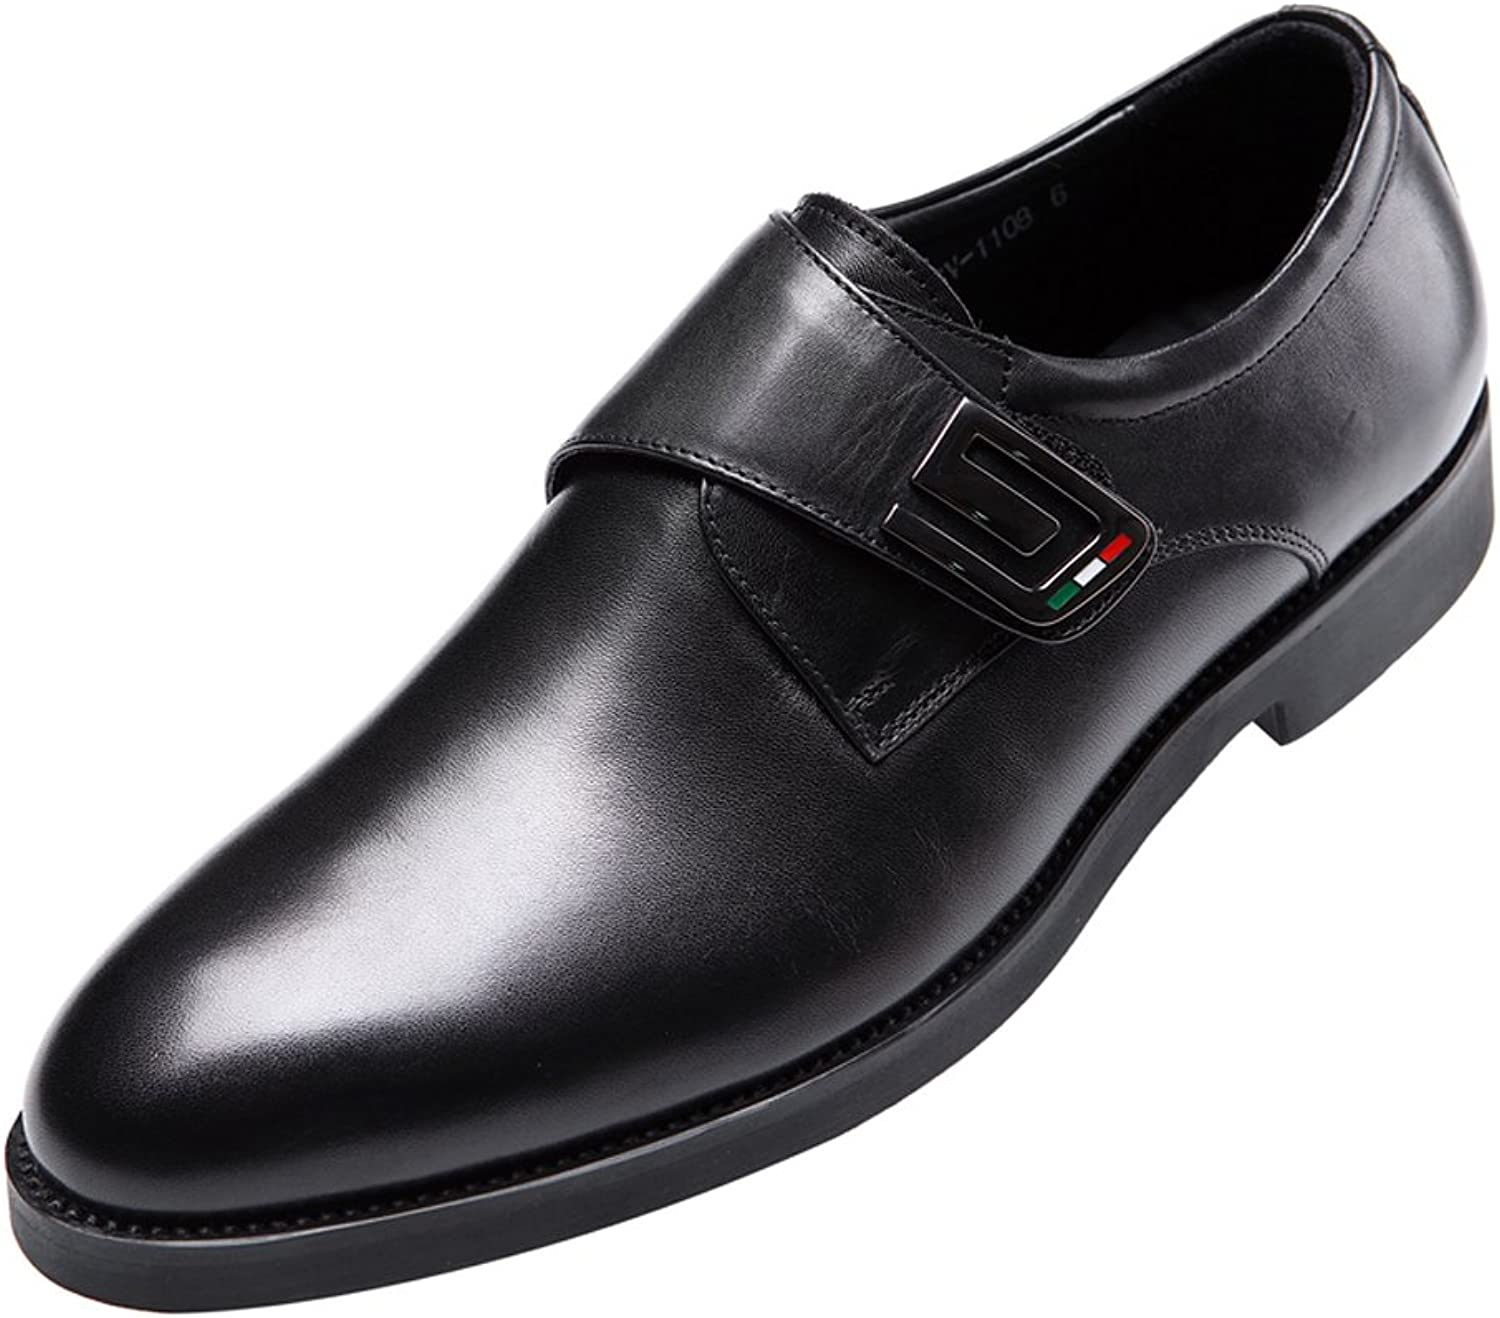 Dilize Men's Monk Strap Casual Slip on Leather shoes